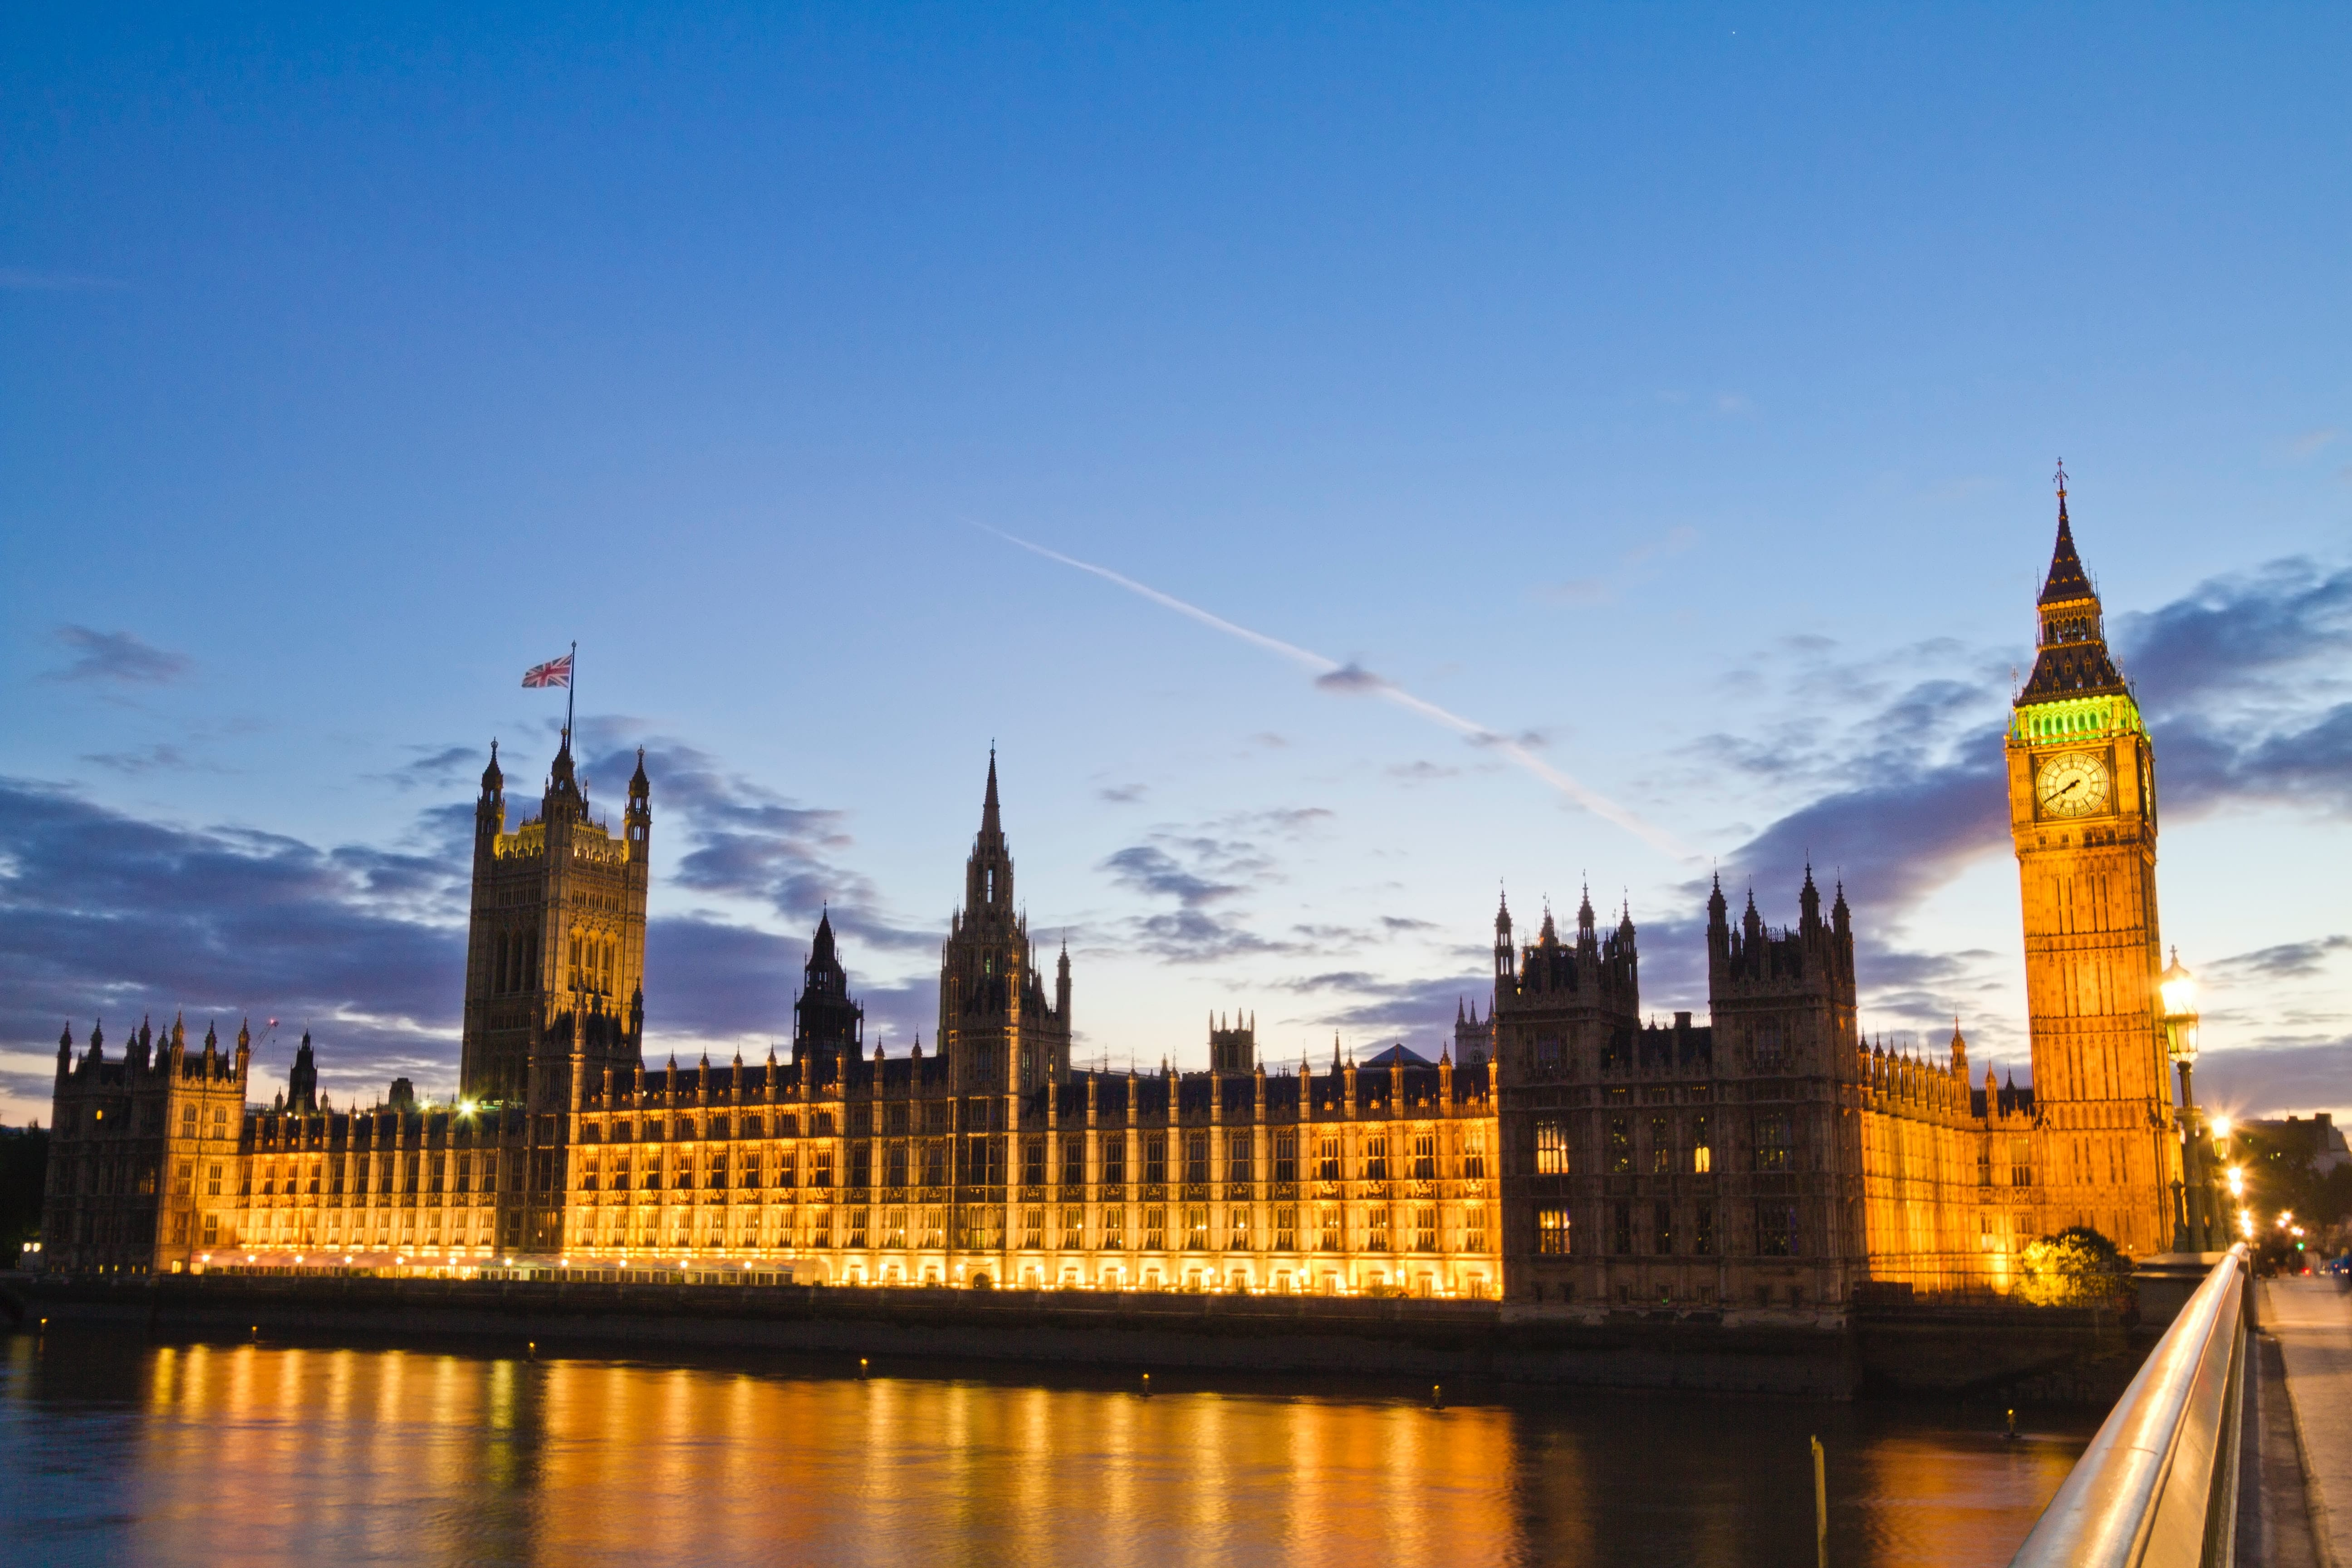 UK dividends tax hike strengthens the case for alternative investments